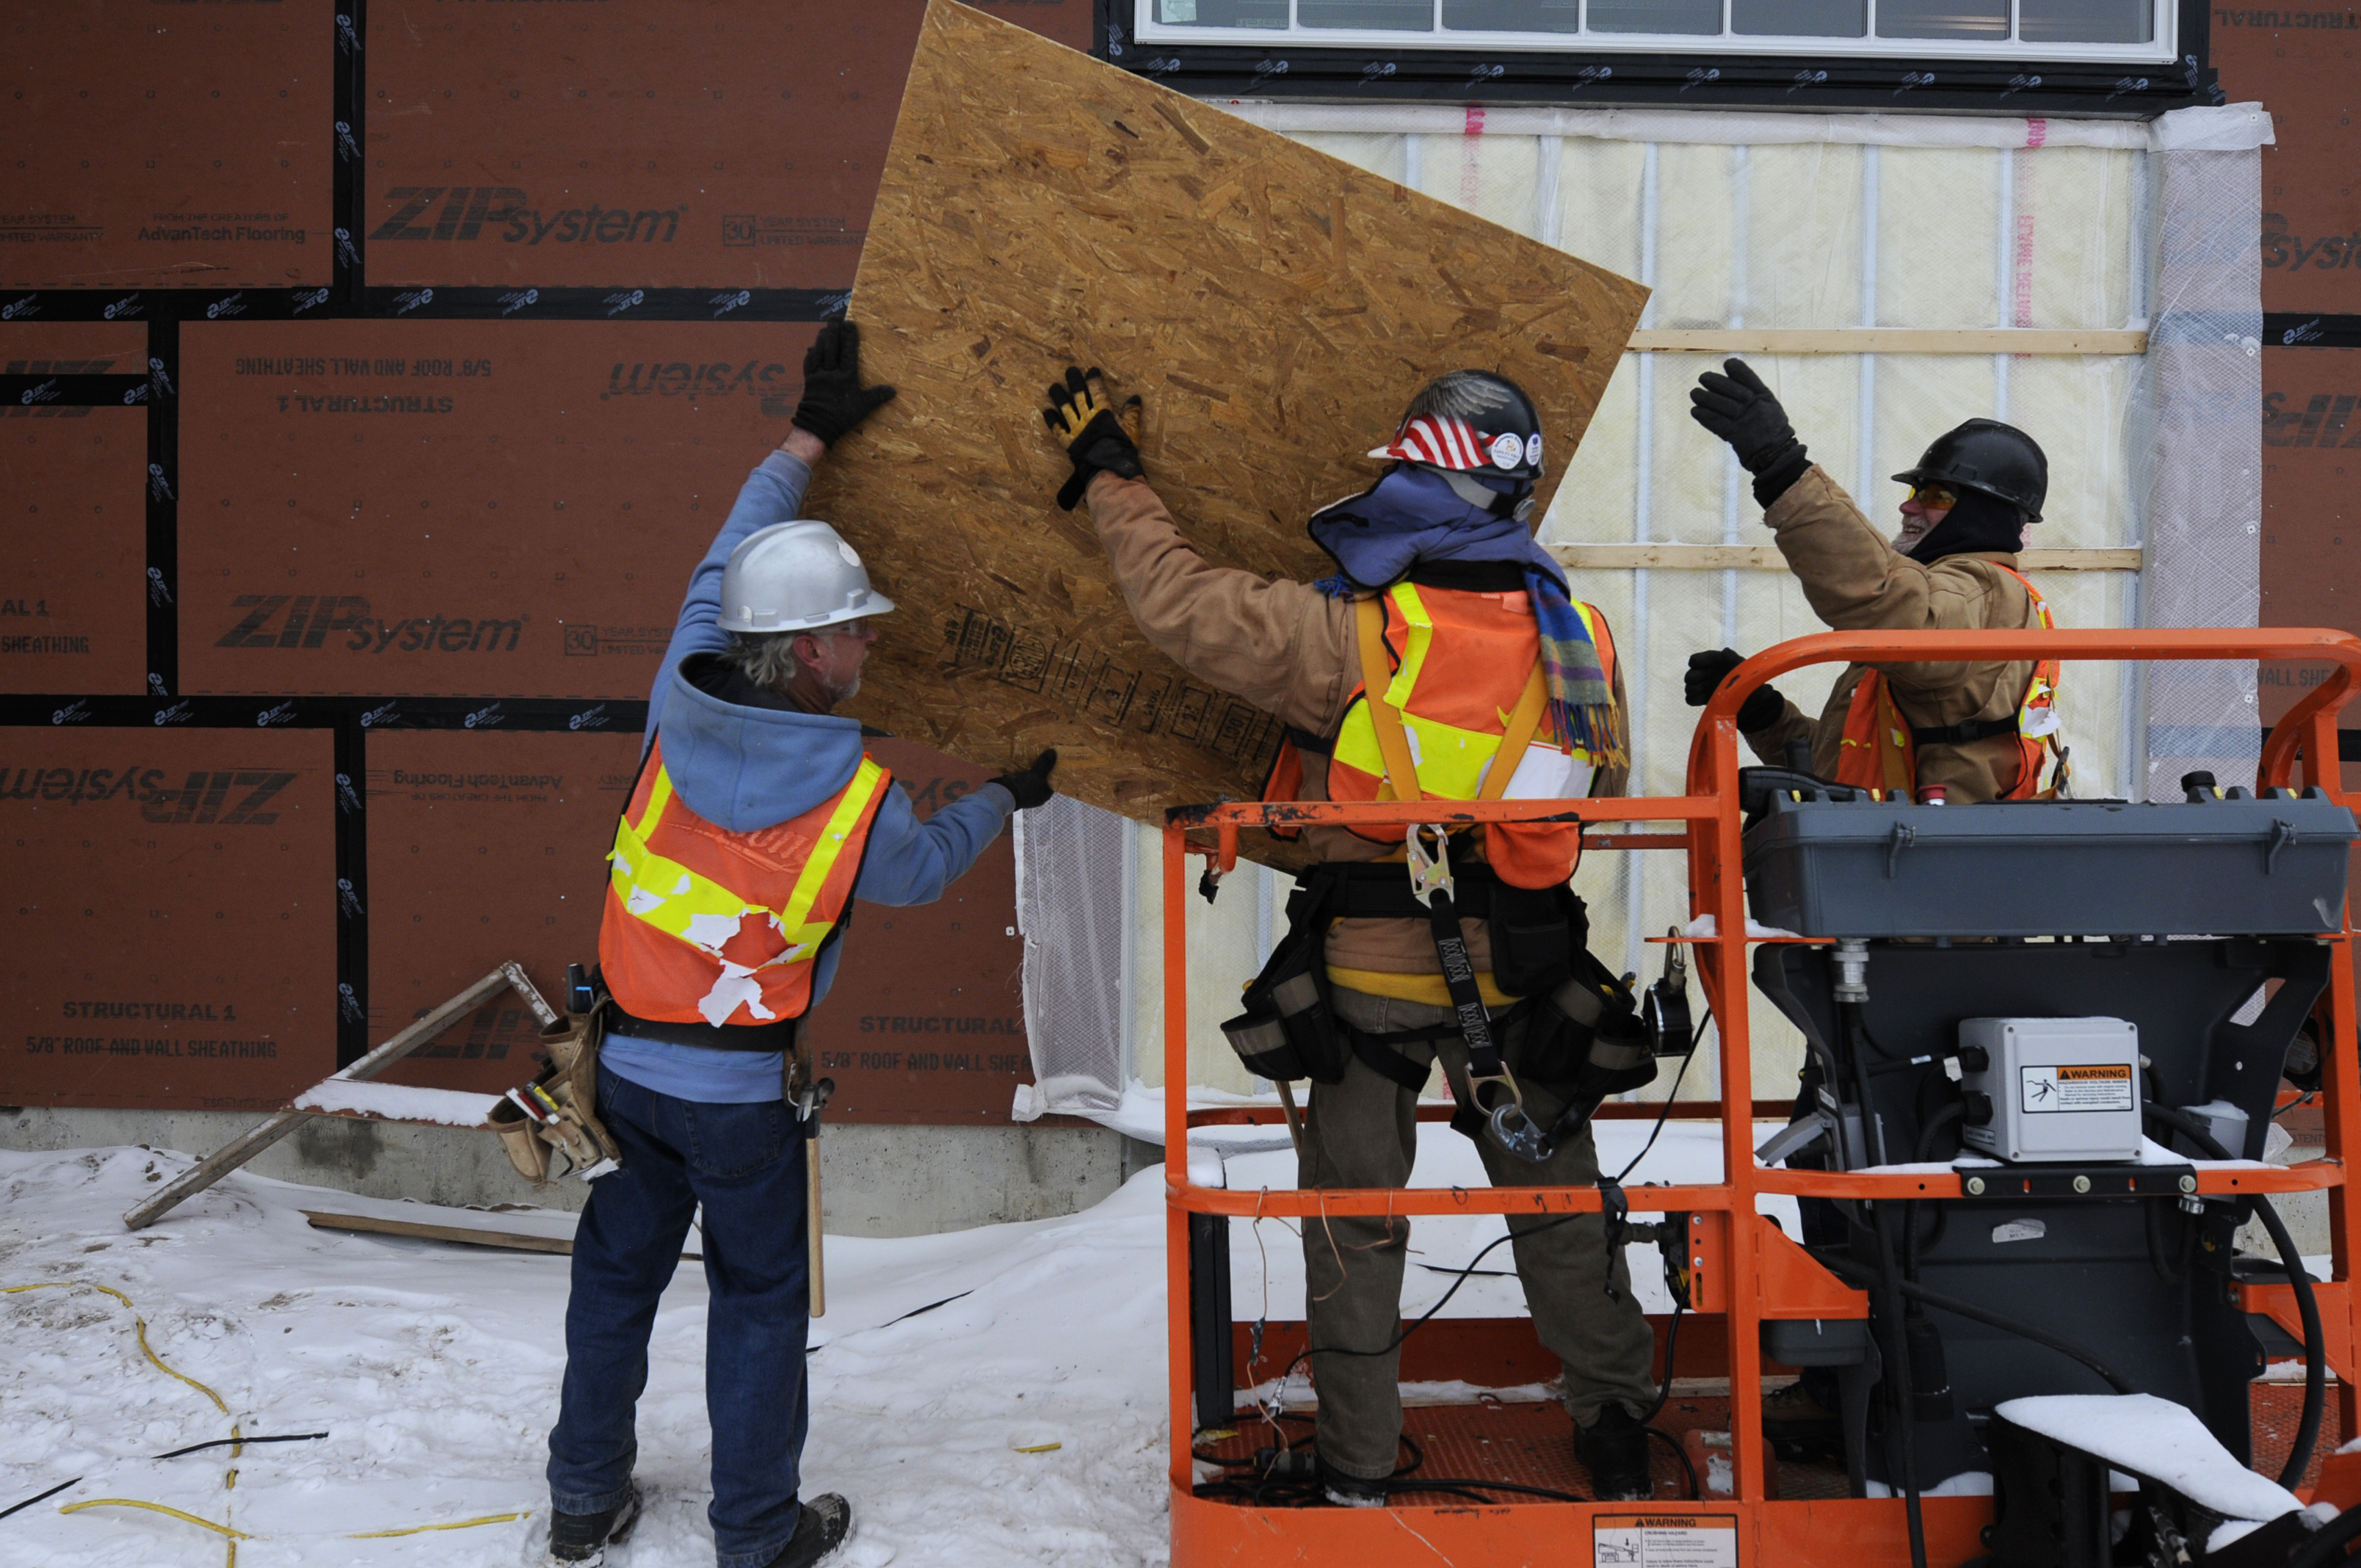 Brothers Gerry, Don and Rick Soucy load a sheet of plywood onto a lift while working in 16 degree weather at the Glastonbury boathouse construction site in Glastonbury Thursday. The three carpenters come prepared for the cold when working outside in winter.